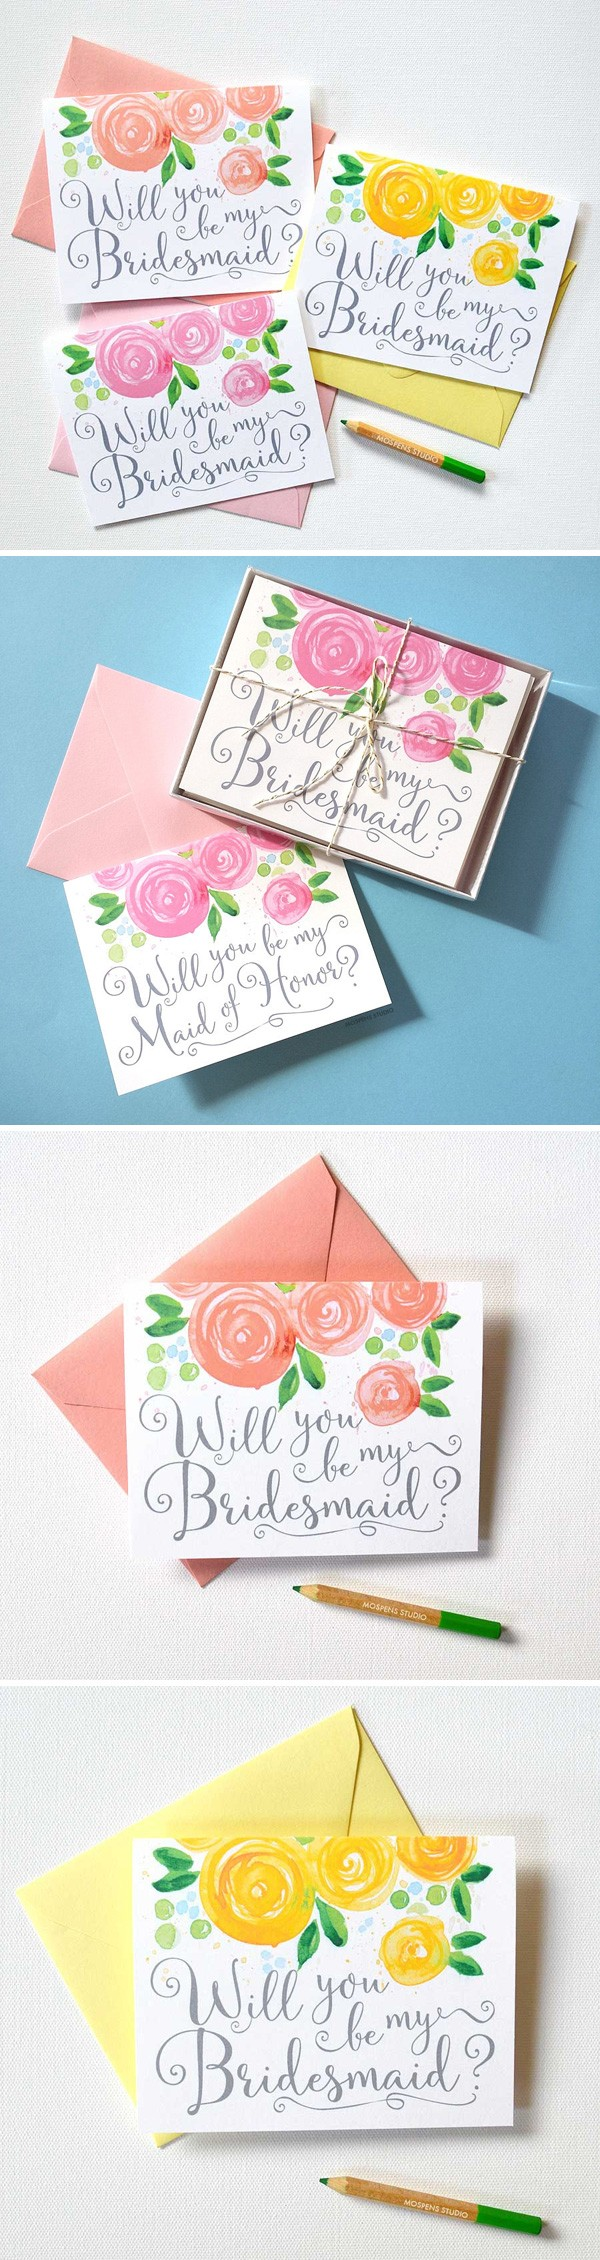 So pretty! Watercolor Will You Be My Bridesmaid Cards by artist Michelle Mospens. 100% original art. - www.mospensstudio.com